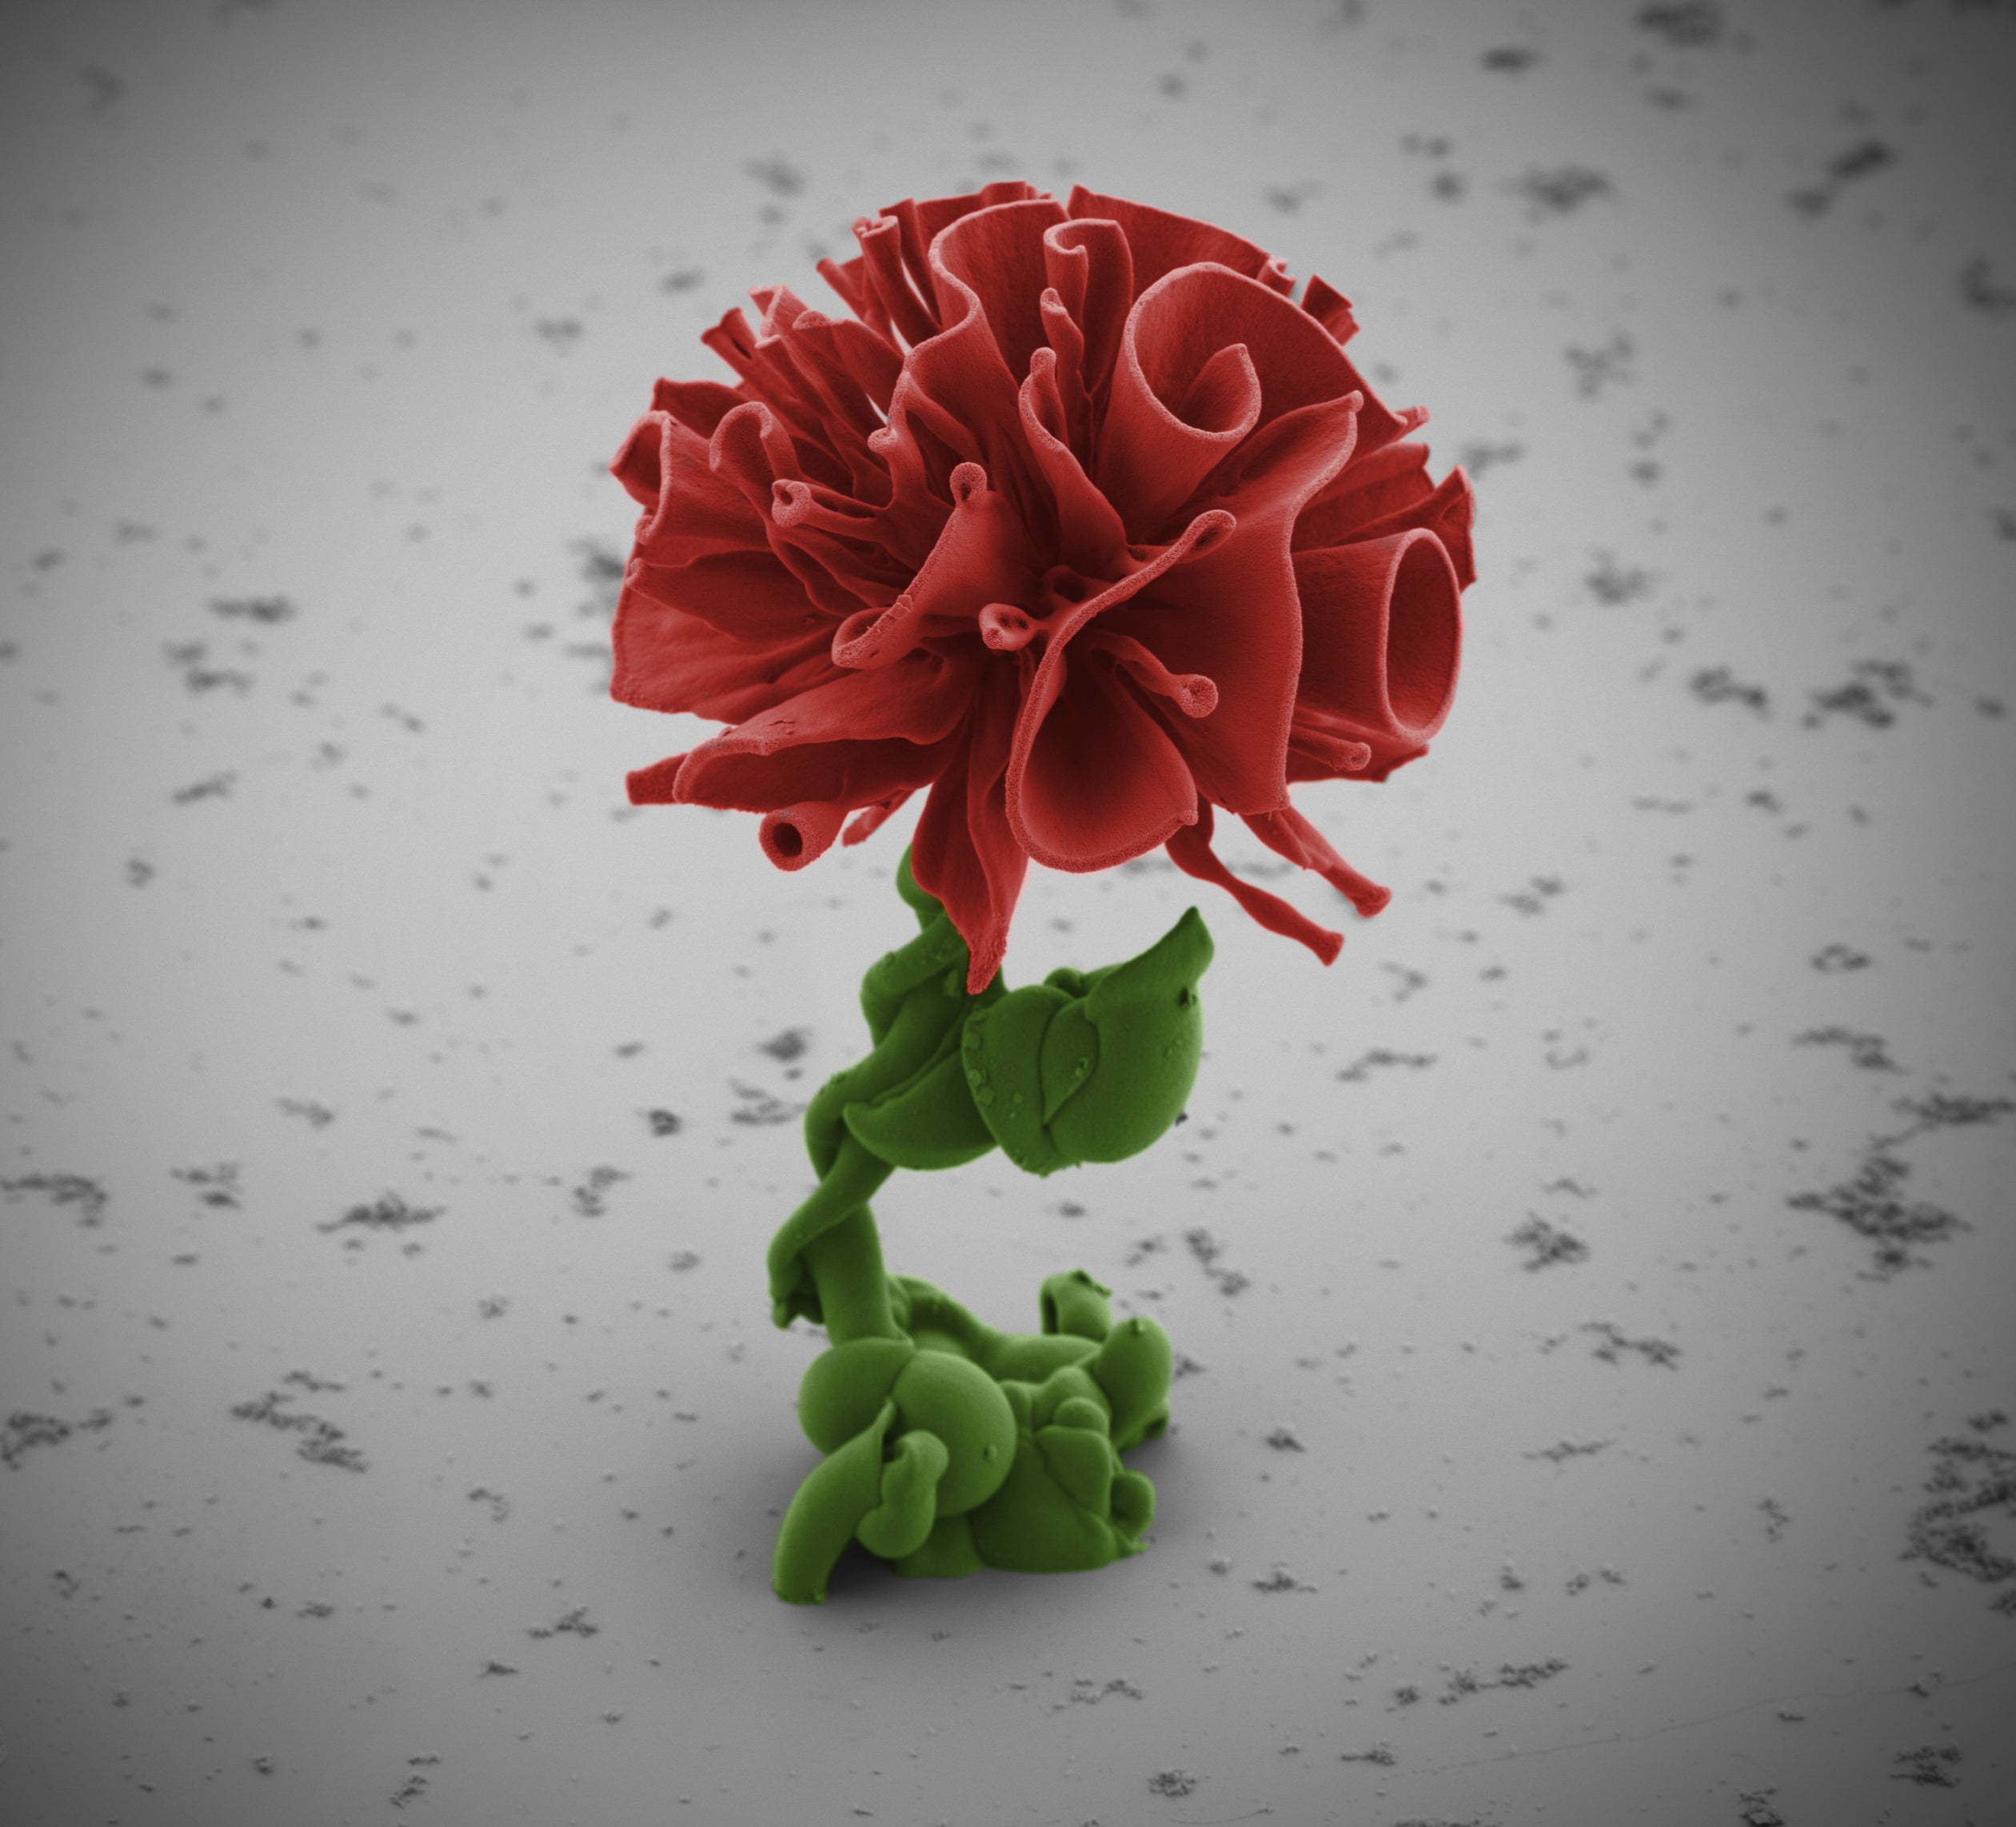 8 Tiny Sculptures You Can Only See With an Electron Microscope